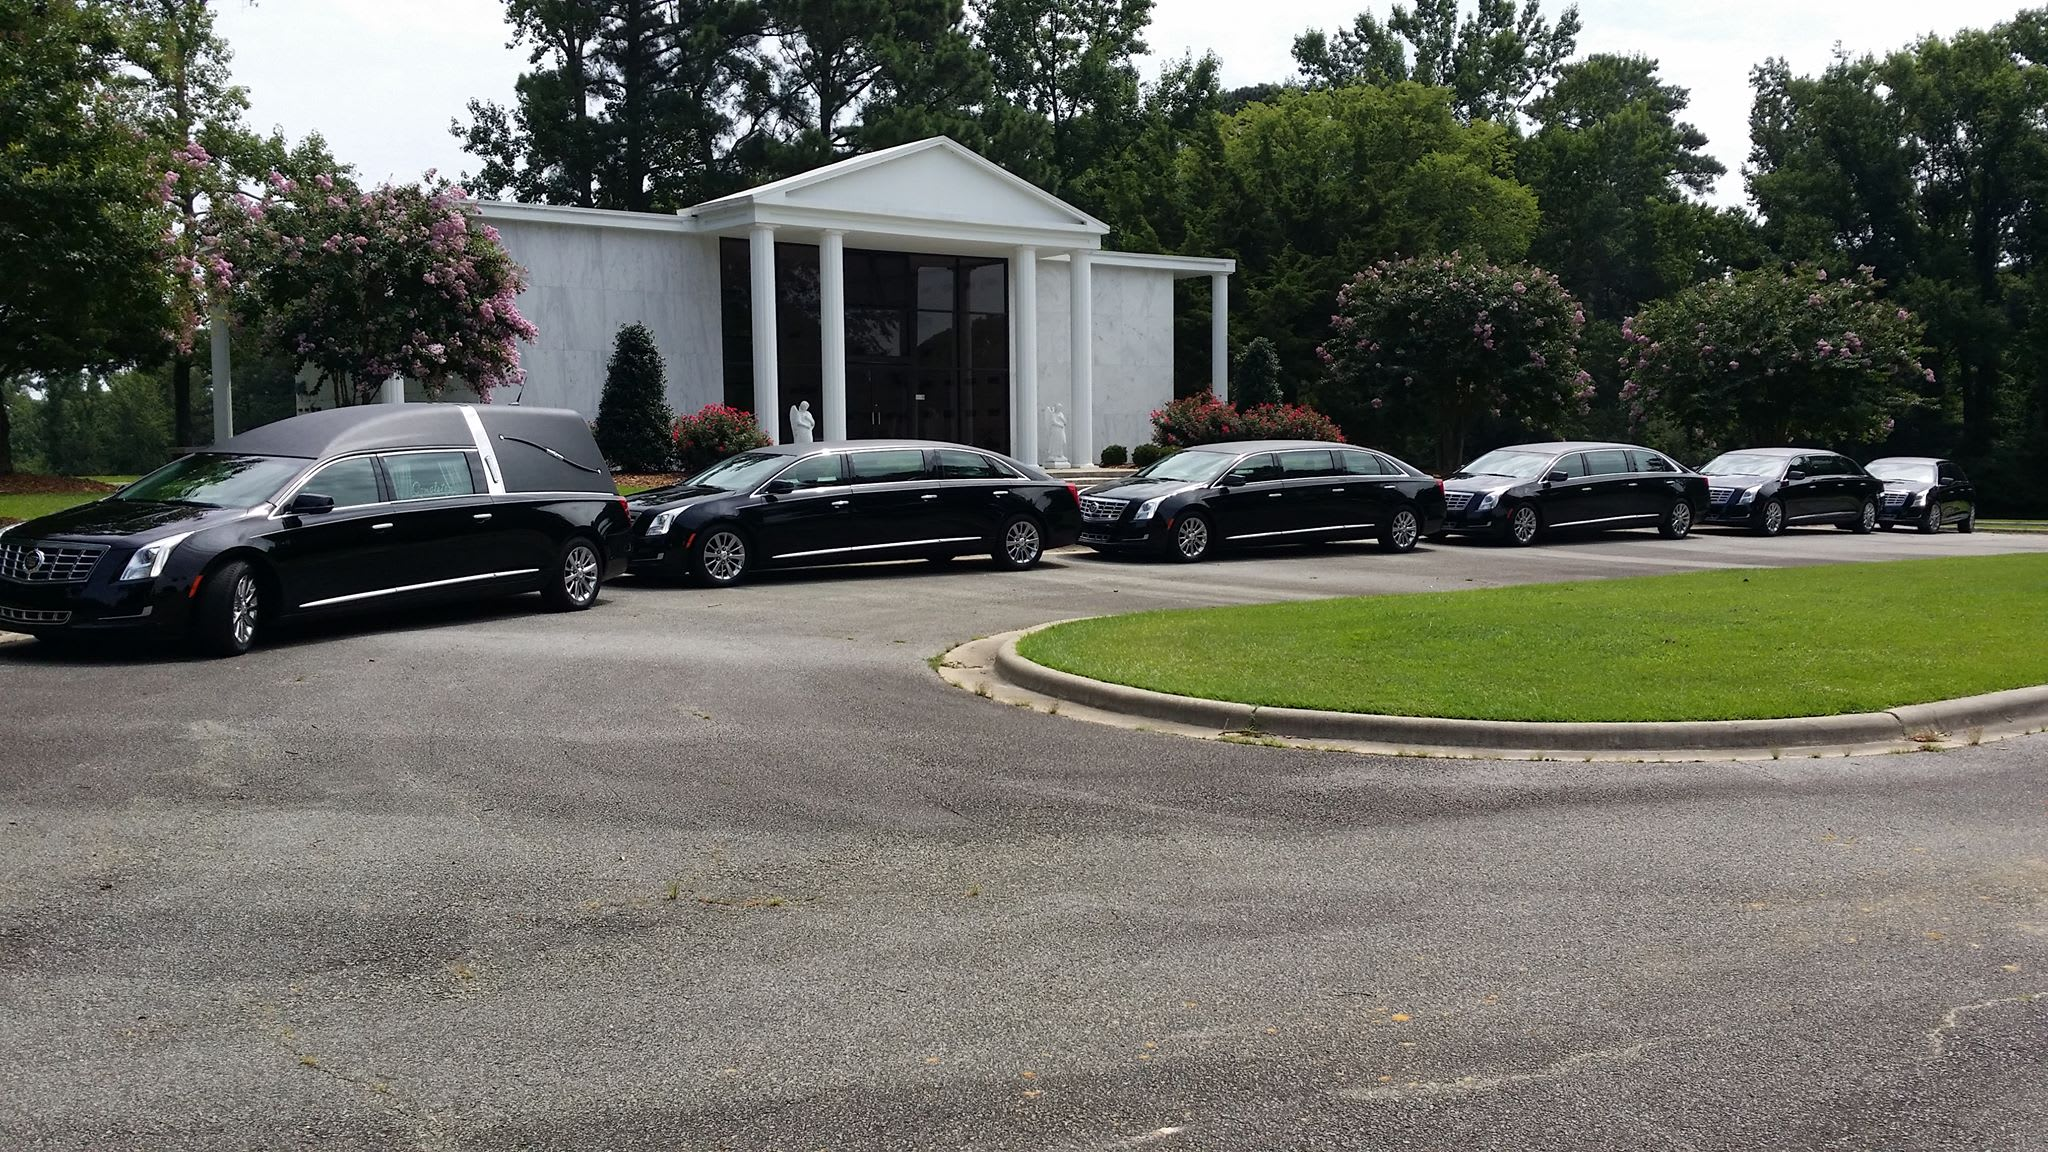 Congleton Funeral Home and Cremations - Greenville, NC